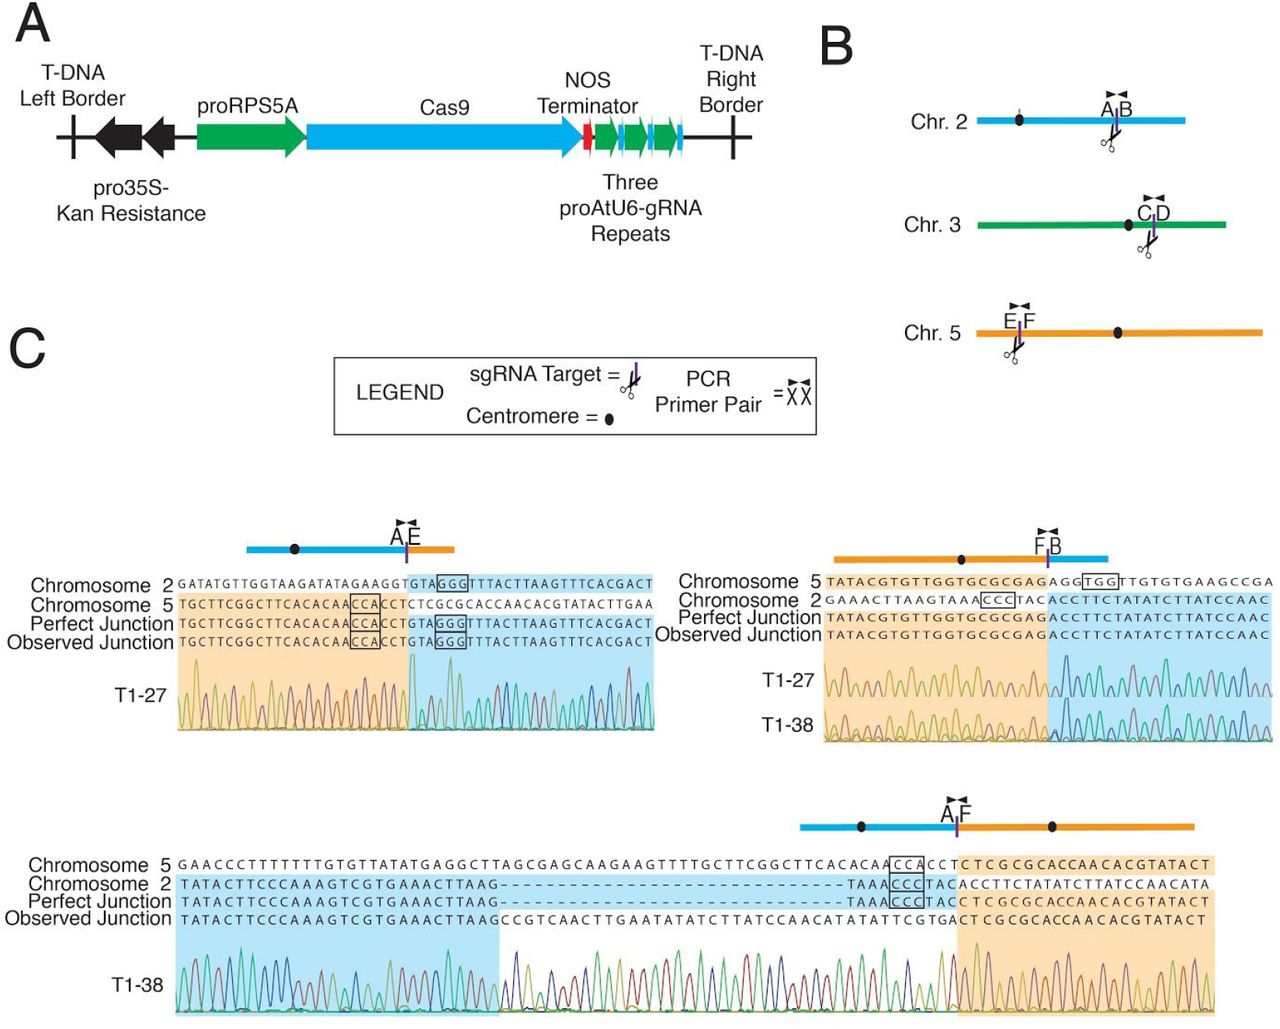 Translocation and duplication from CRISPR-Cas9 editing in